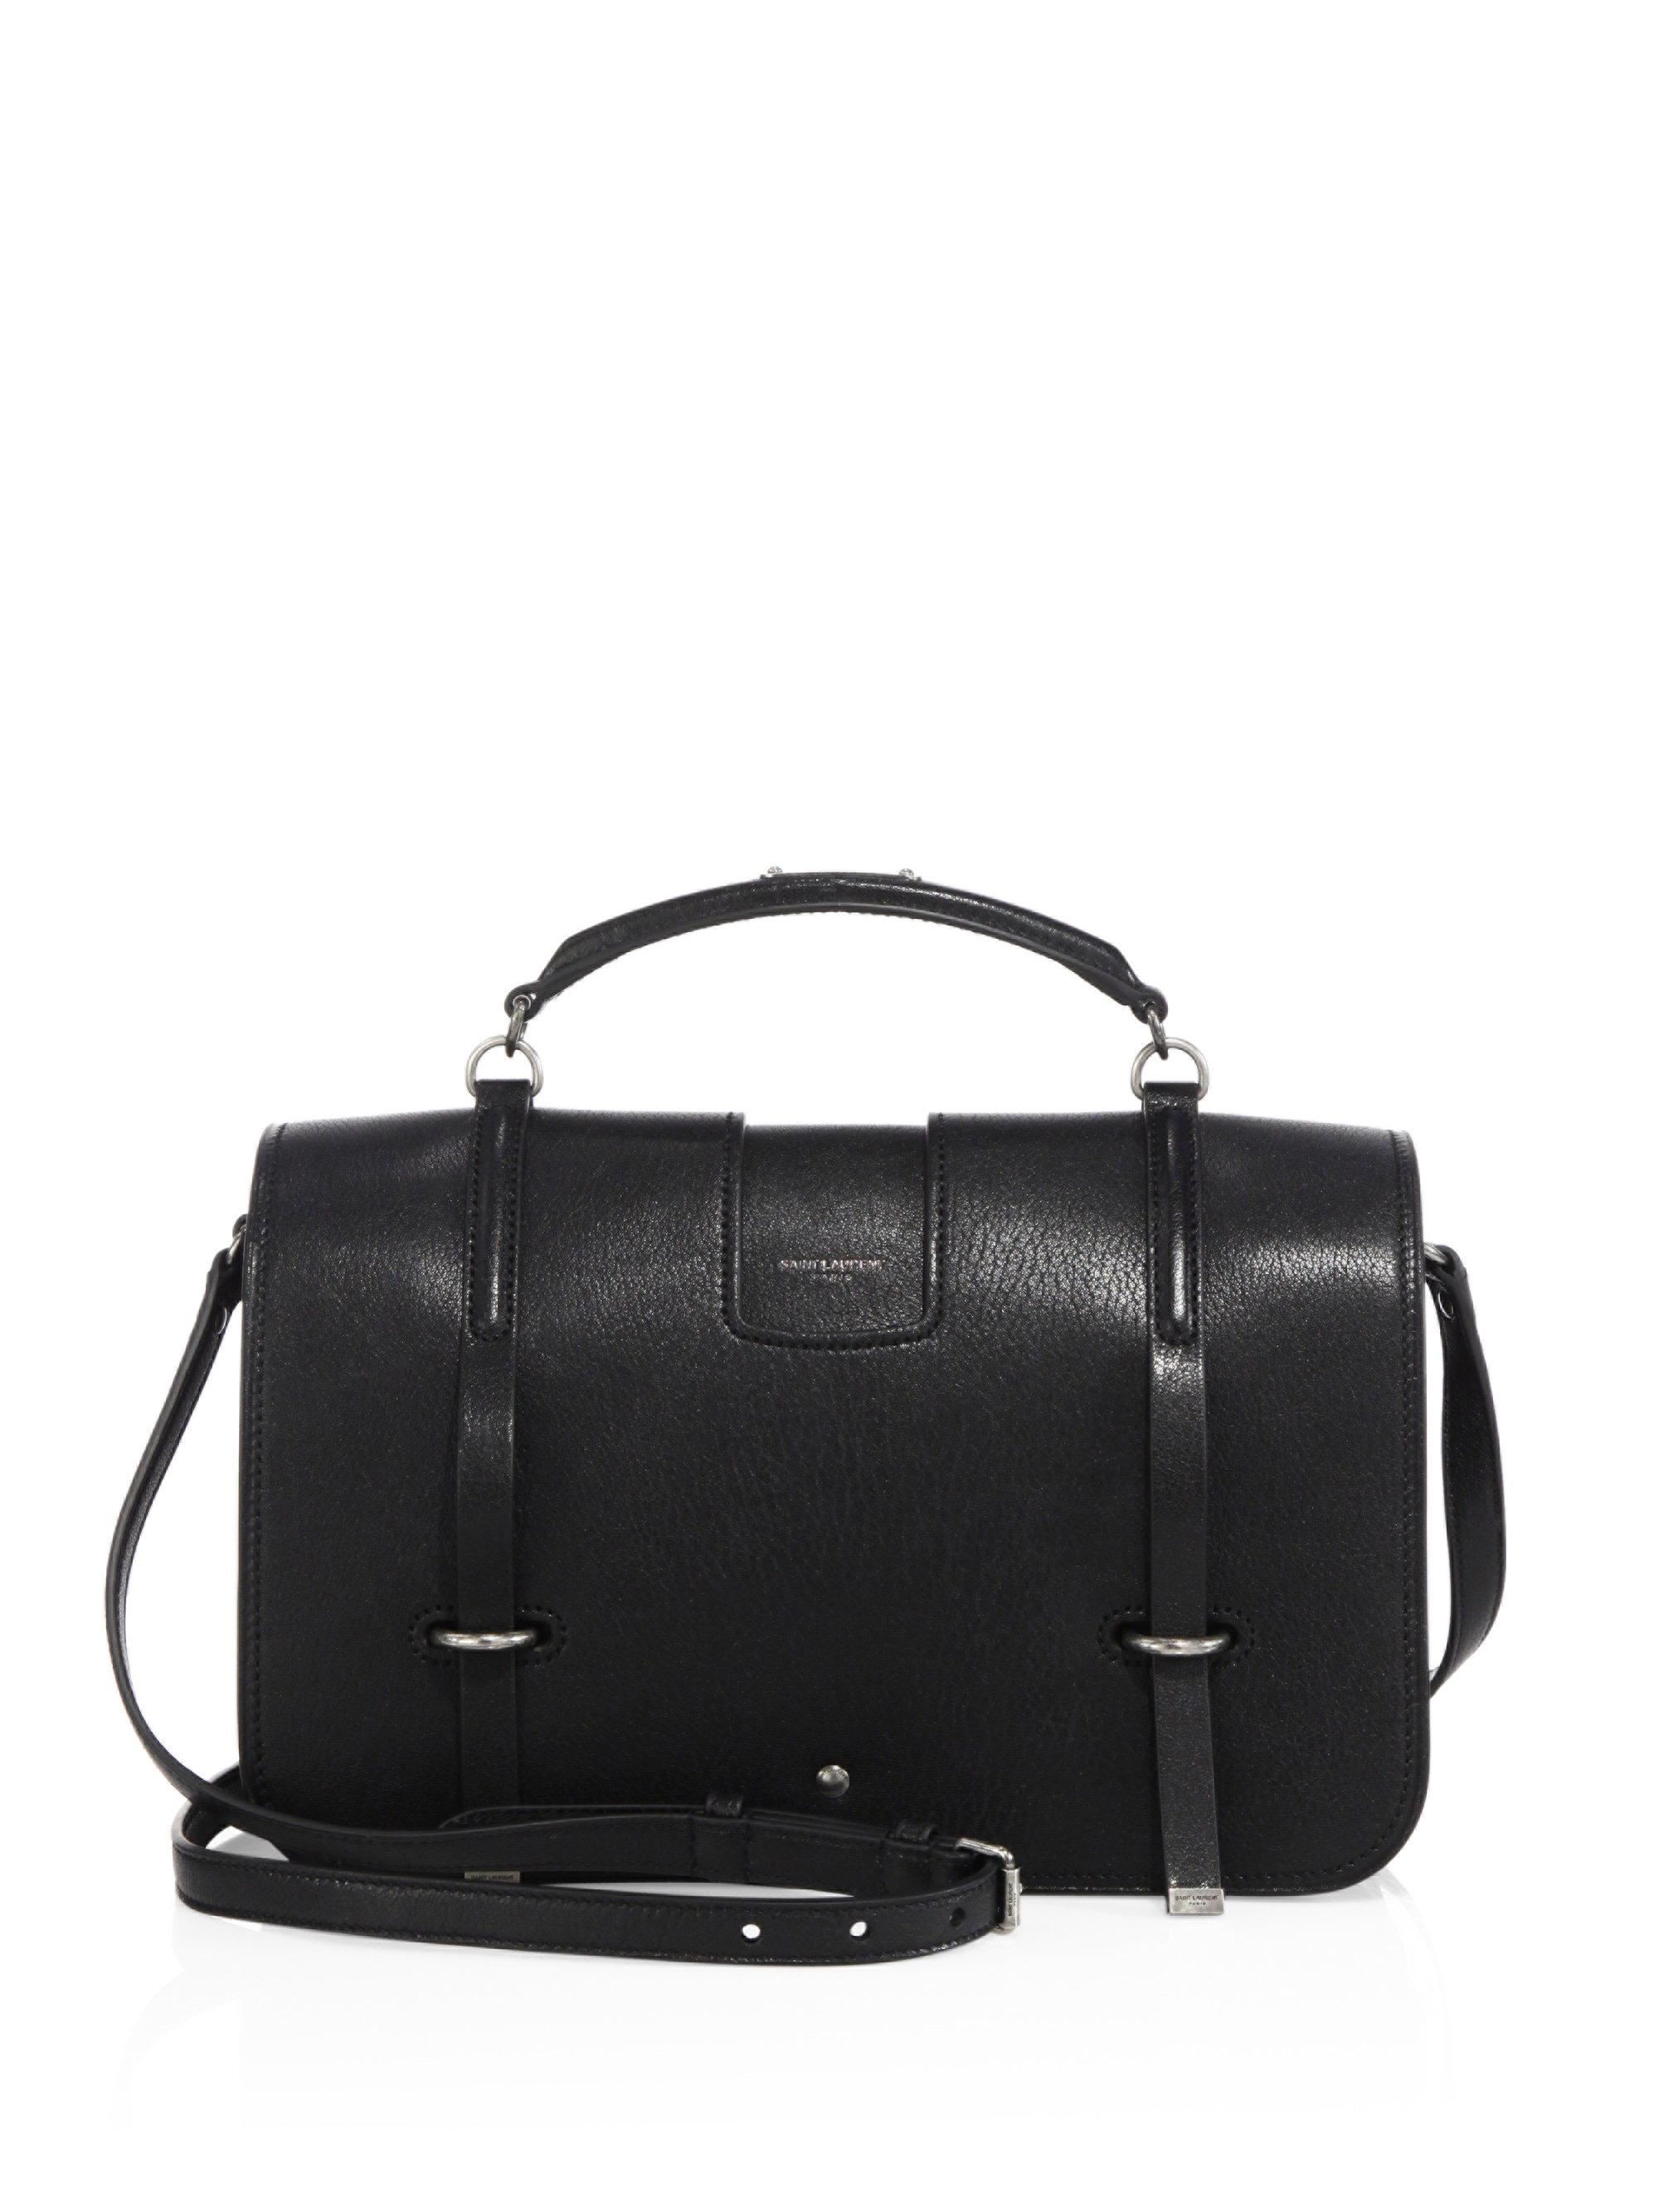 4eda3e2da30 Saint Laurent Bag Sale Lyst | Mount Mercy University